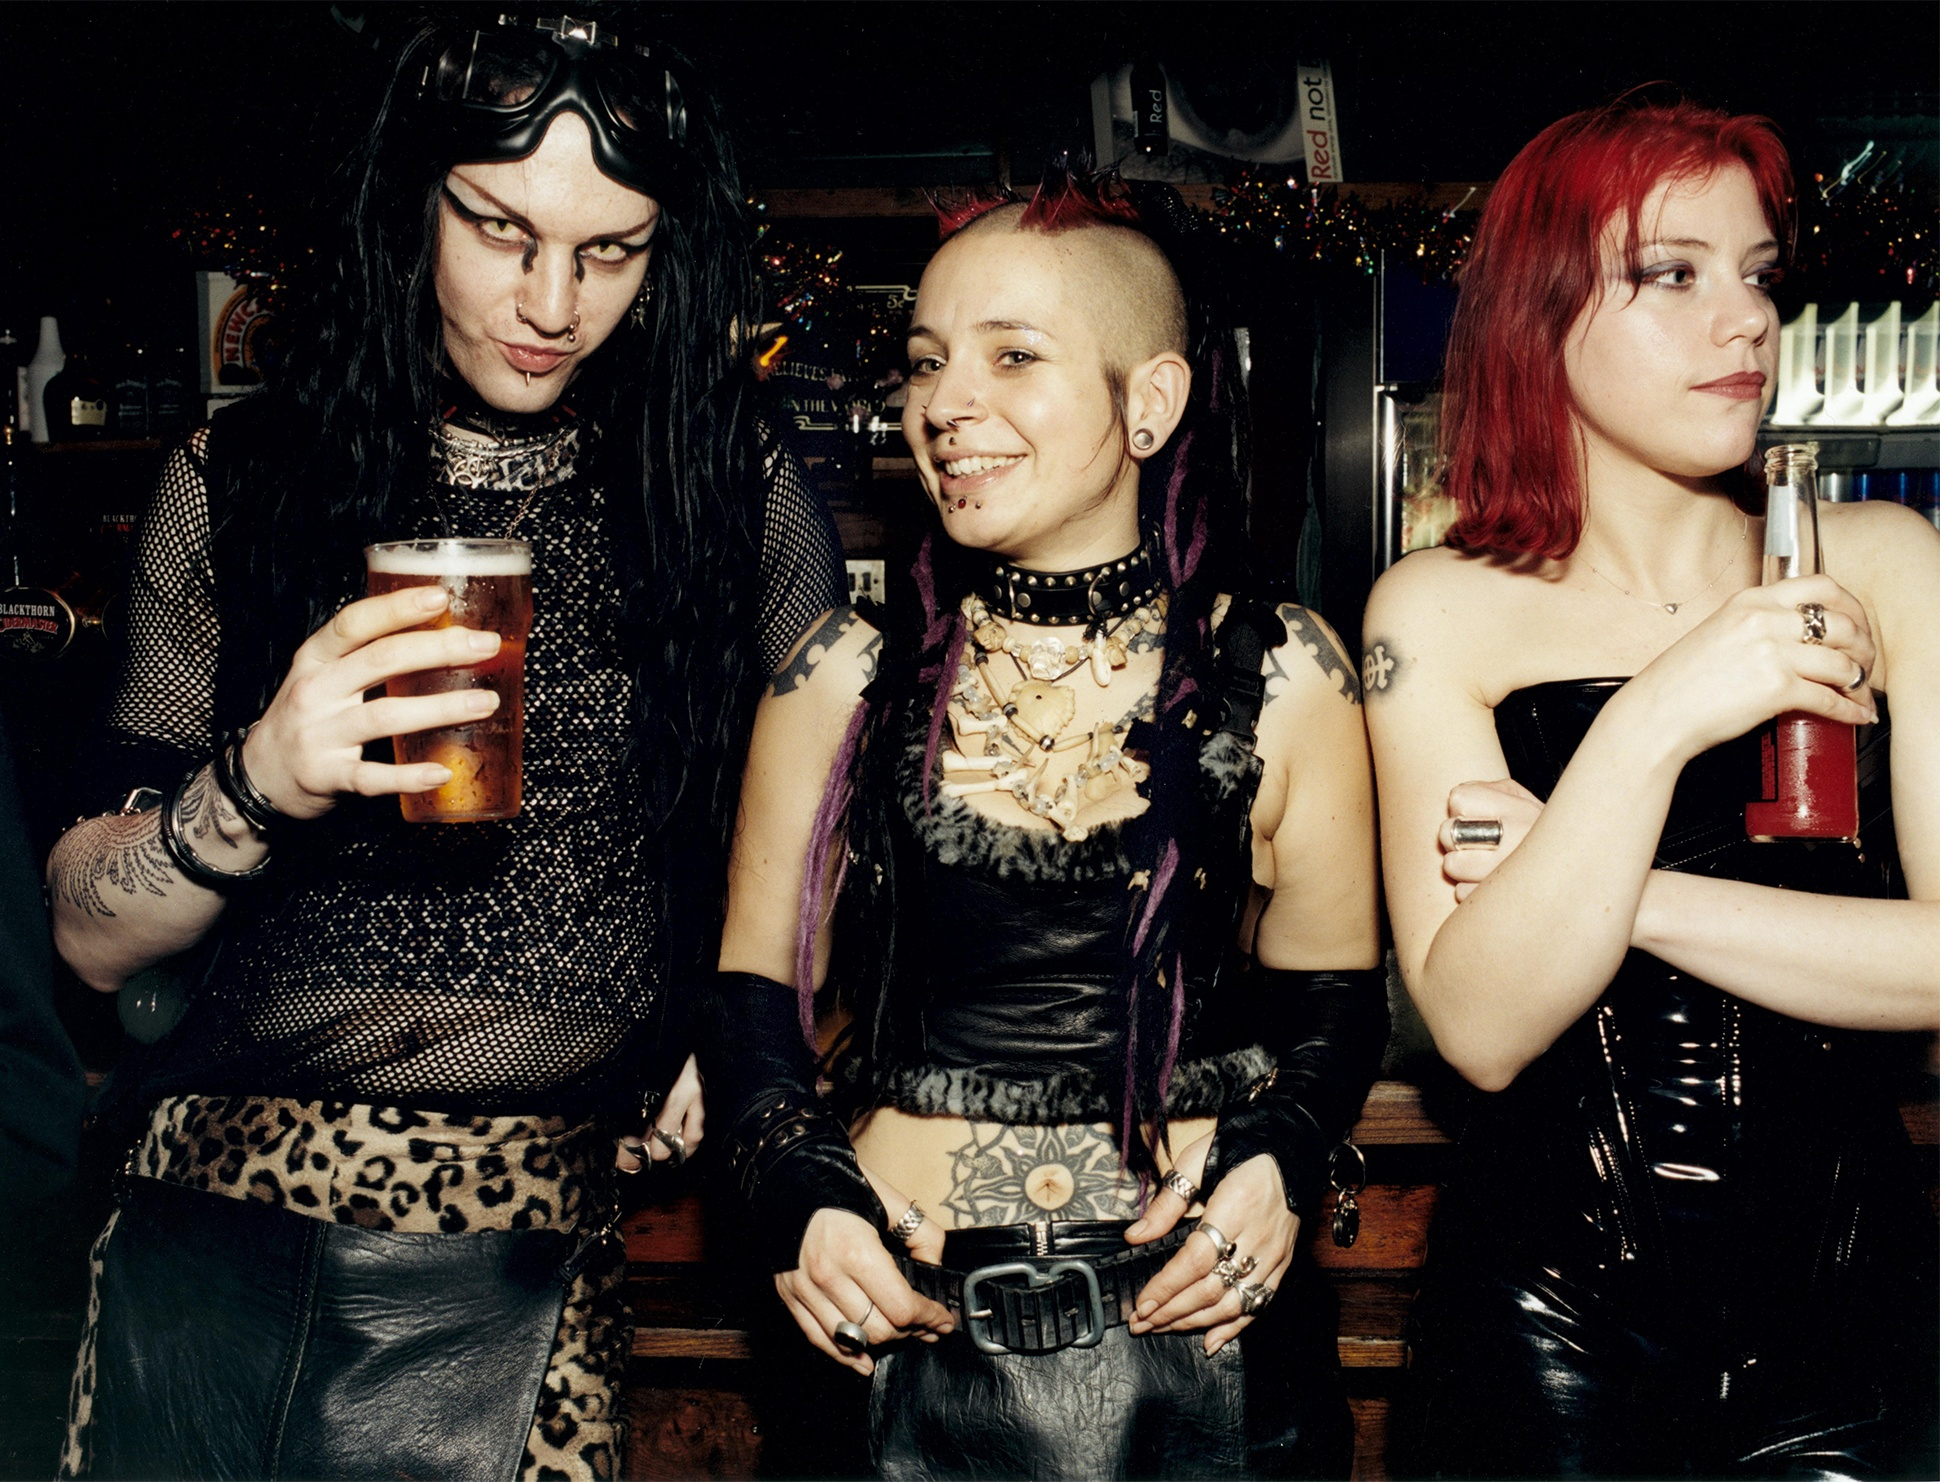 Cyber goths in latex and leather drinking in a pub in Brighton, 2001 by Rebecca Lewis